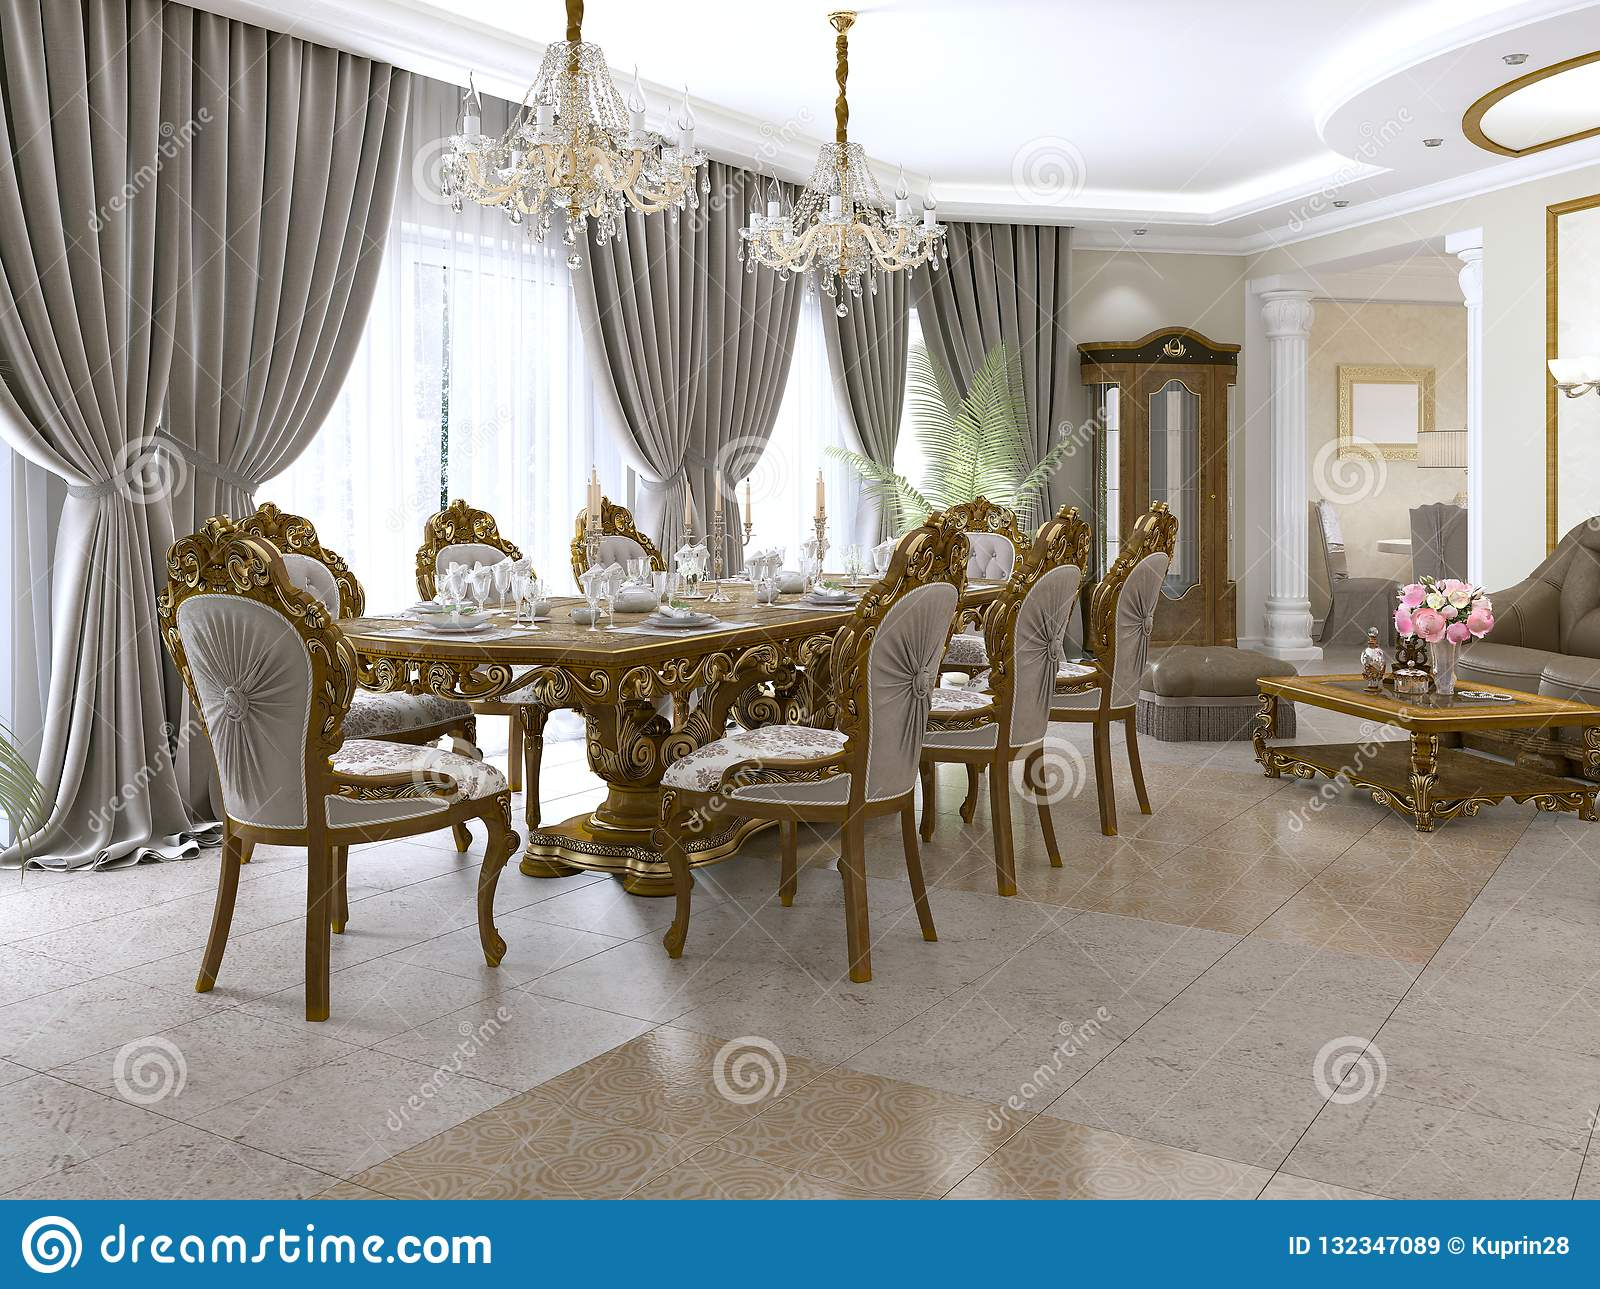 Picture of: A Modern Classic Living Room In An Art Deco Style With A Dining Table And Views Of The Kitchen And The Foyer Stock Illustration Illustration Of Floor Lamp 132347089